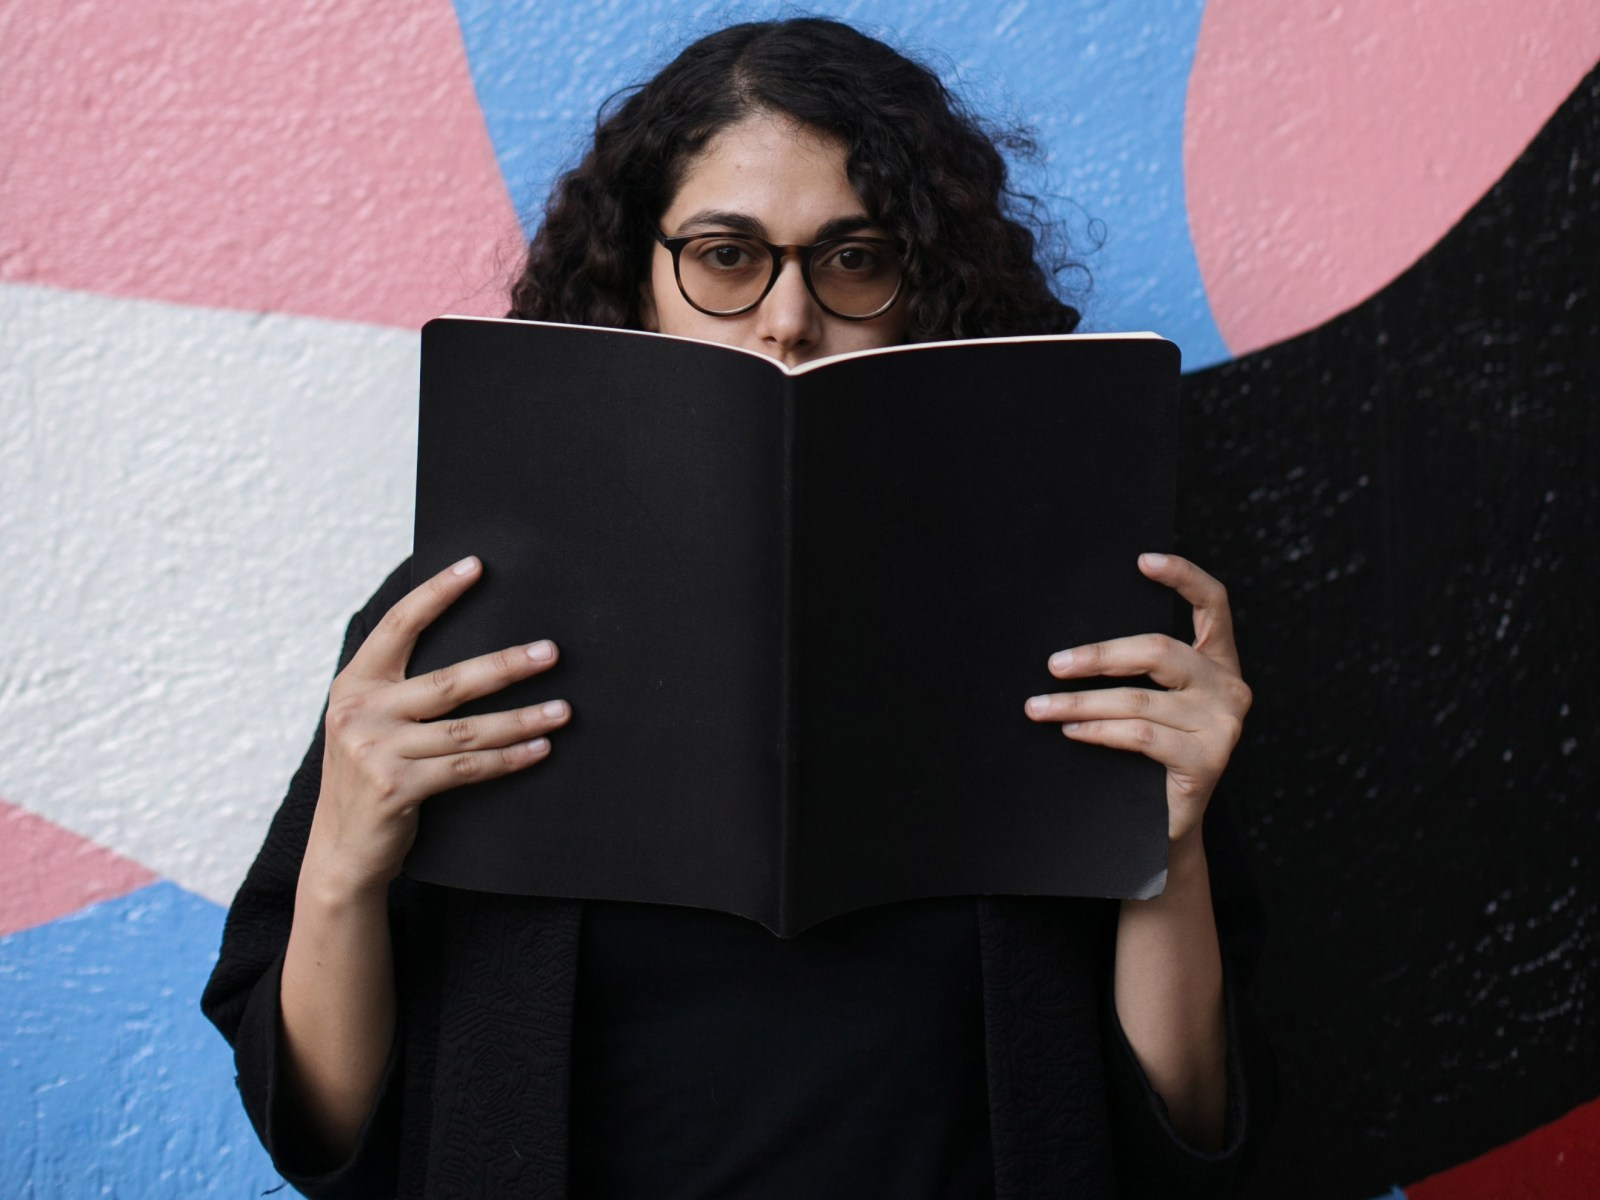 5 College Advice Books That Are Actually Helpful